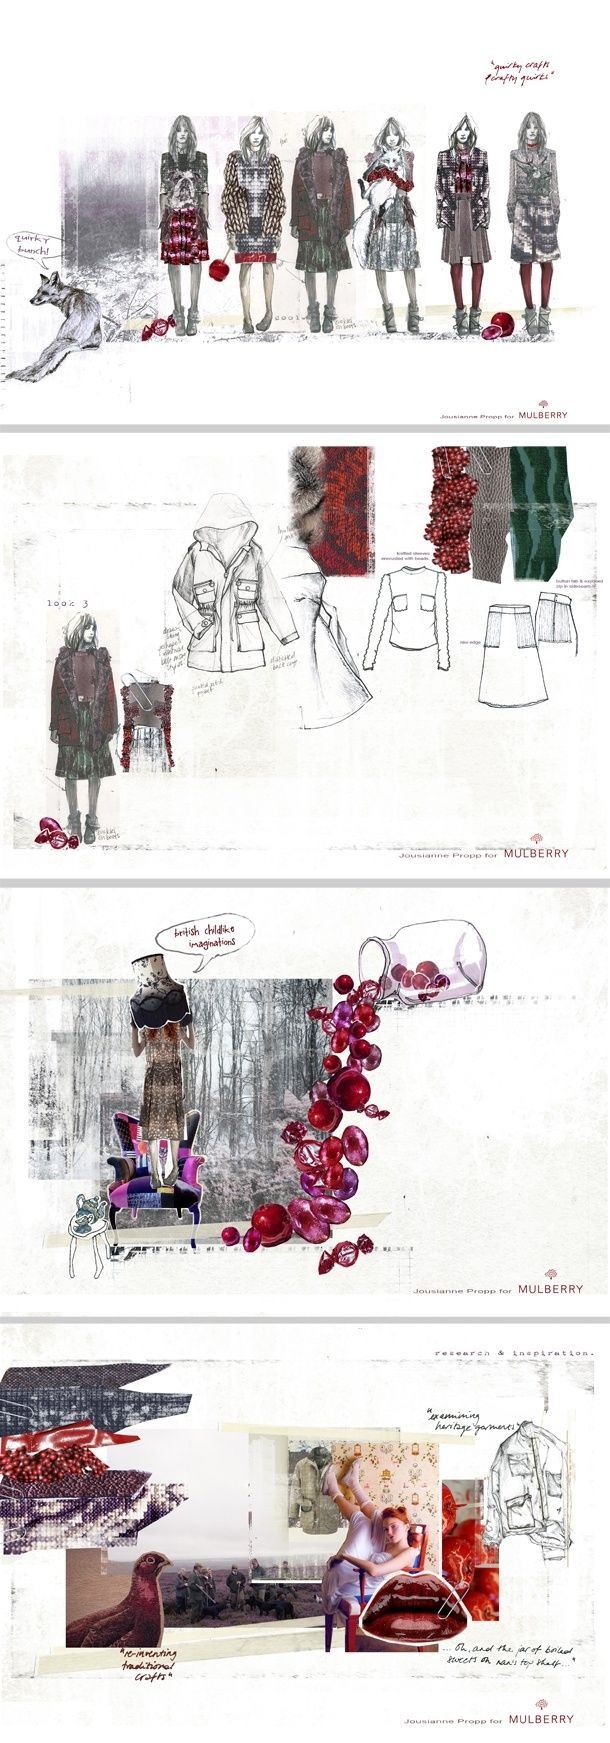 follow me @cushite ARTS THREAD - Jousianne Propp - BFC Mulberry Design Competition 2012